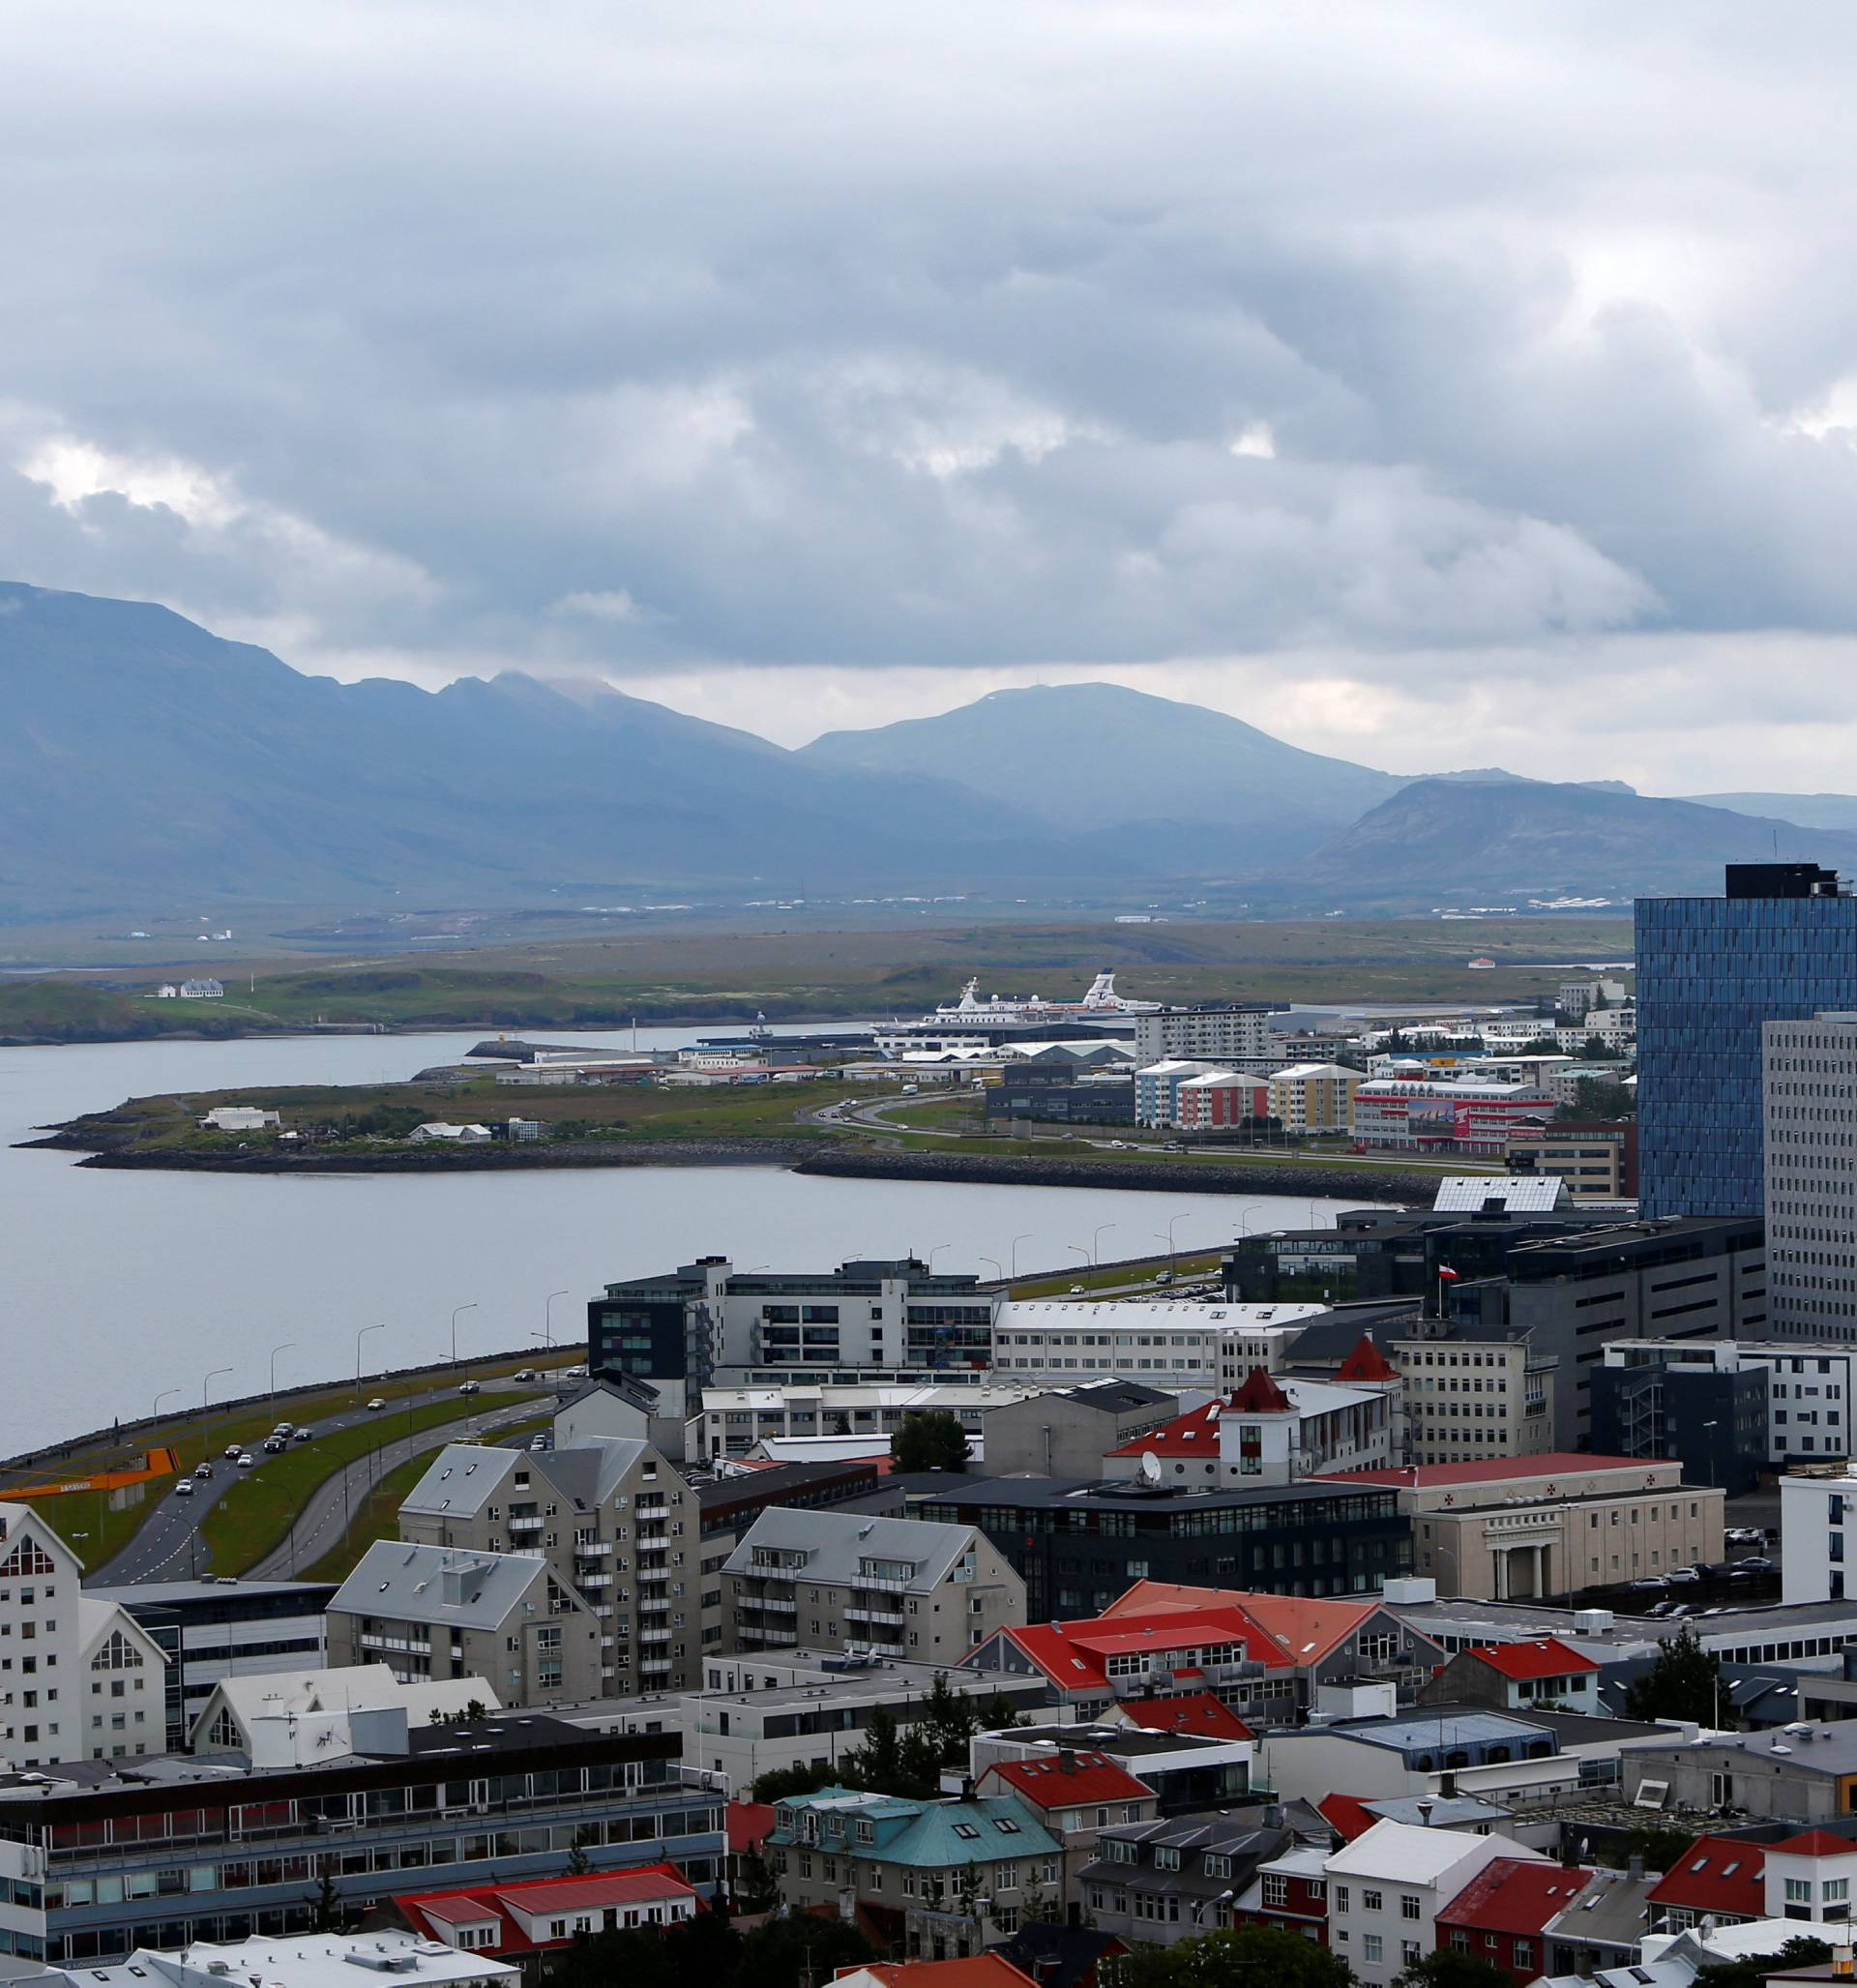 General view shows city of Reykjavik, seen from Hallgrimskirkja church